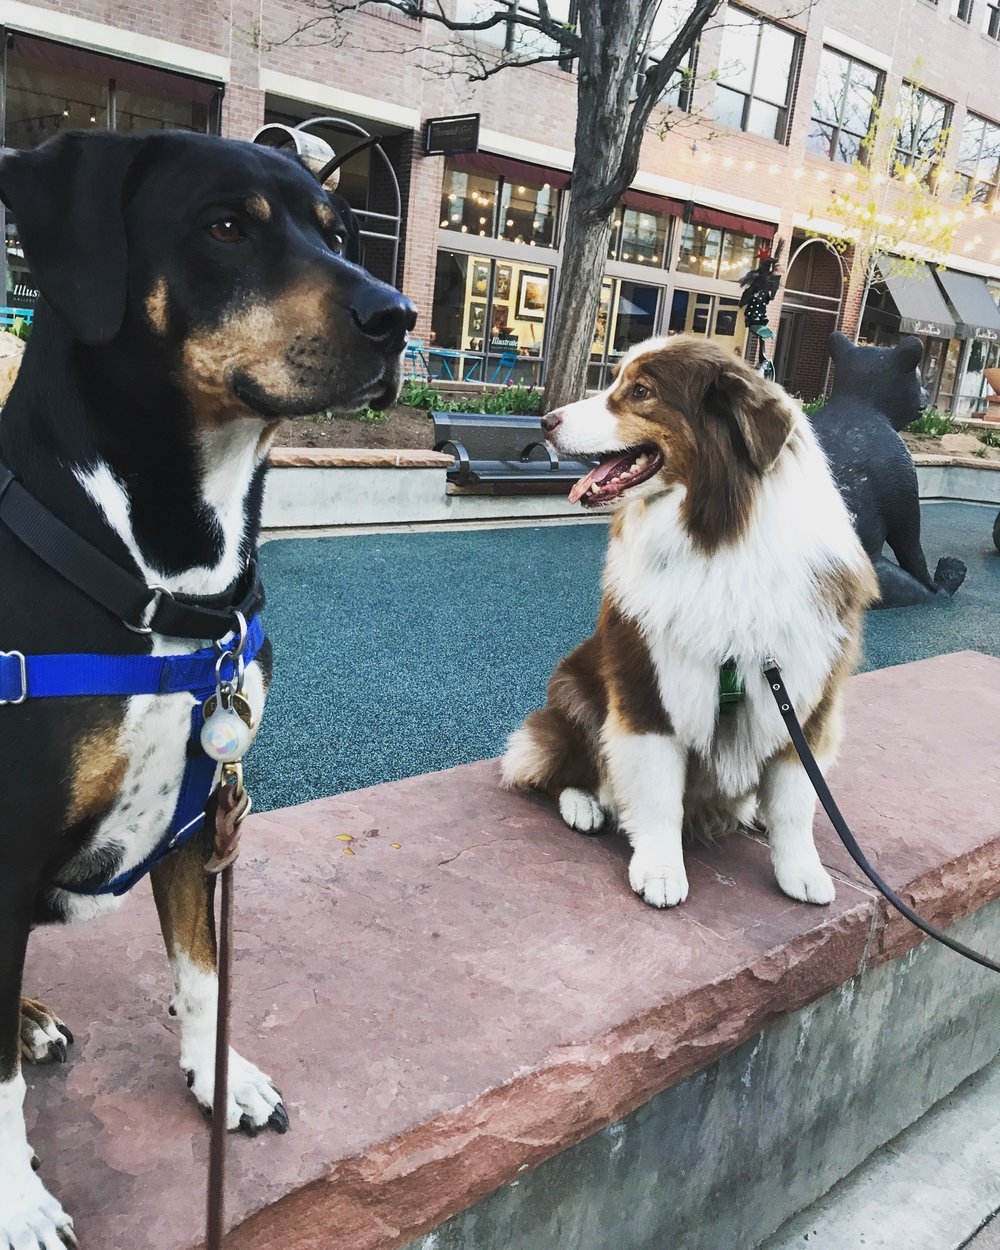 """I was going to add a picture of an embedded prong collar. But as my intention is not so shock, scare, anger, or otherwise flame counterproductive emotions with this discussion, I decided to include a picture of our handsome boys rocking their harnesses in Old Town instead. But you can always google """"embedded prong collar"""" if you want."""